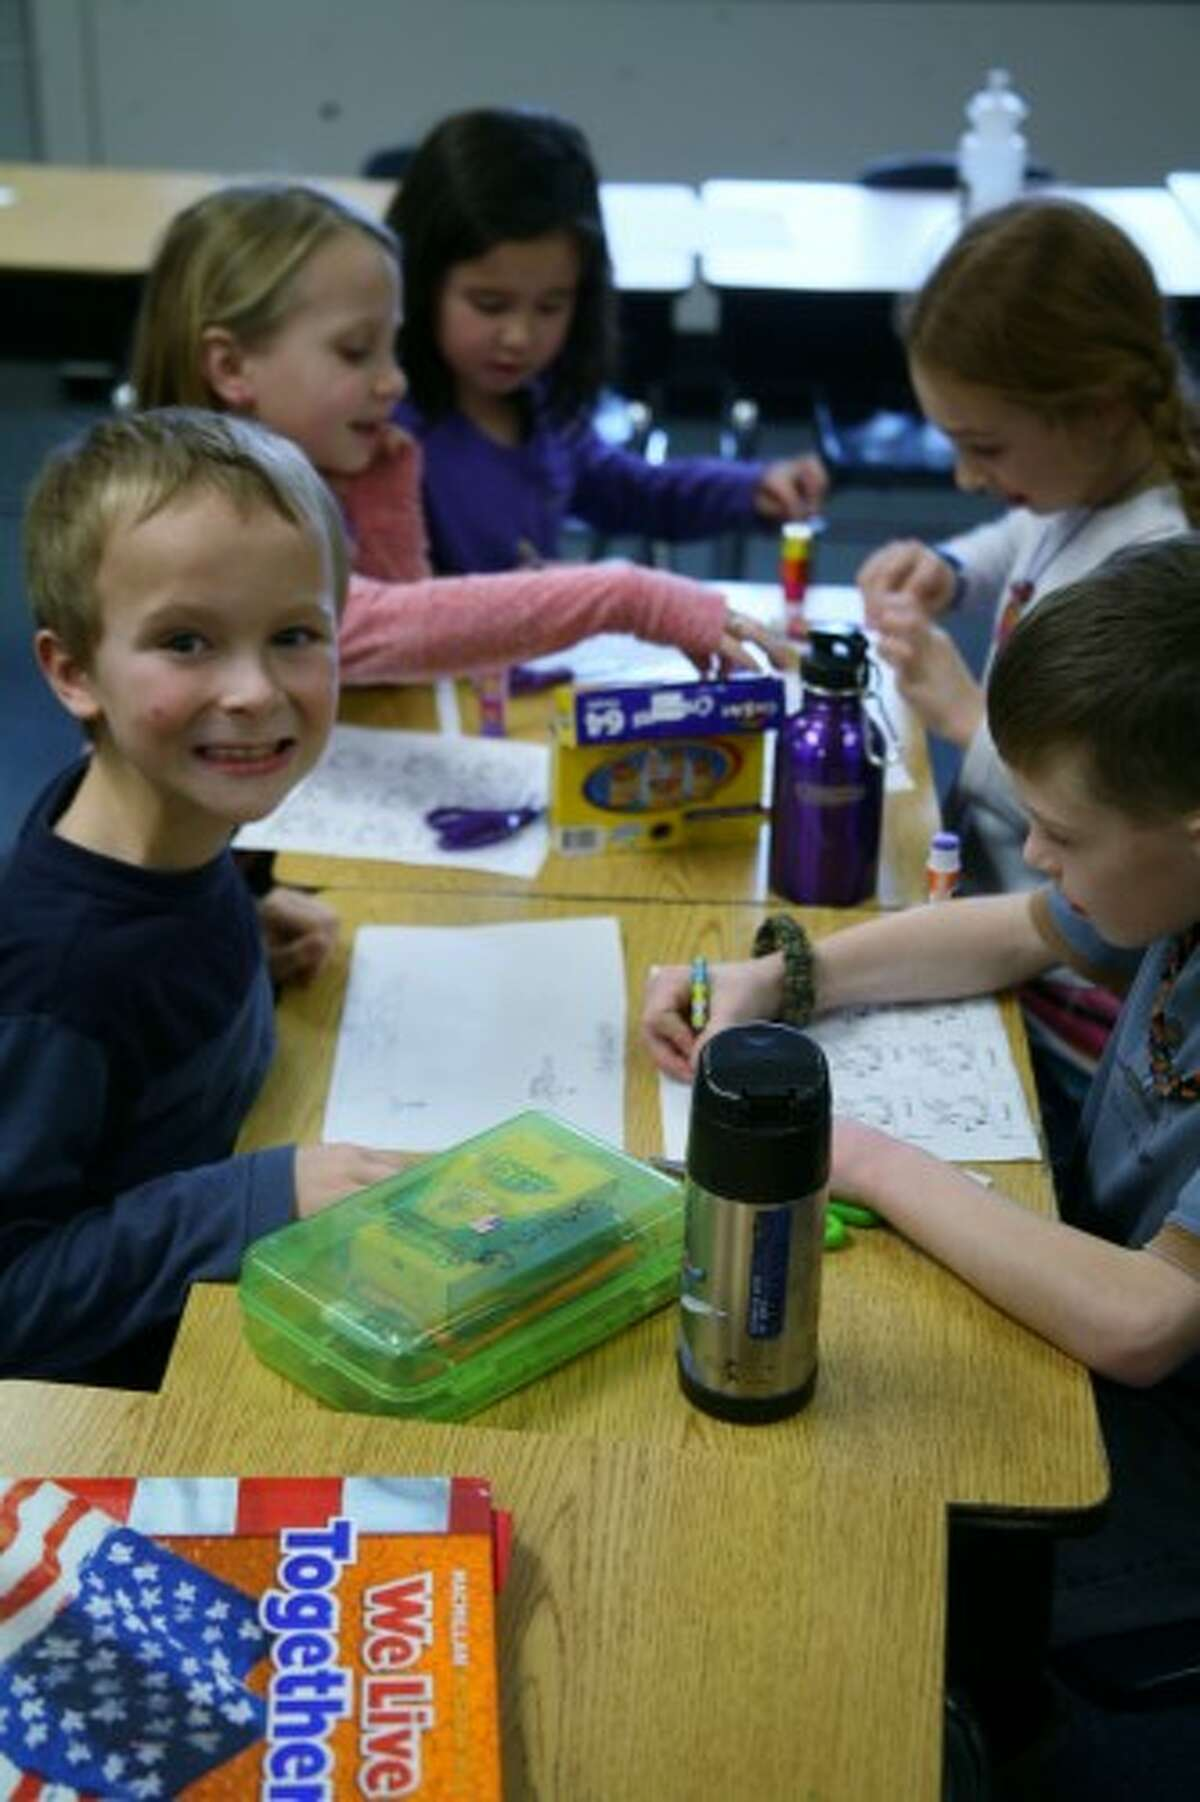 ALPHABETICAL: Second-grade students in Karen King's class at Brookside Elementary School work on an exercise on Thursday putting reindeer in alphabetical order by name. (Pioneer photos/Lauren Fitch)